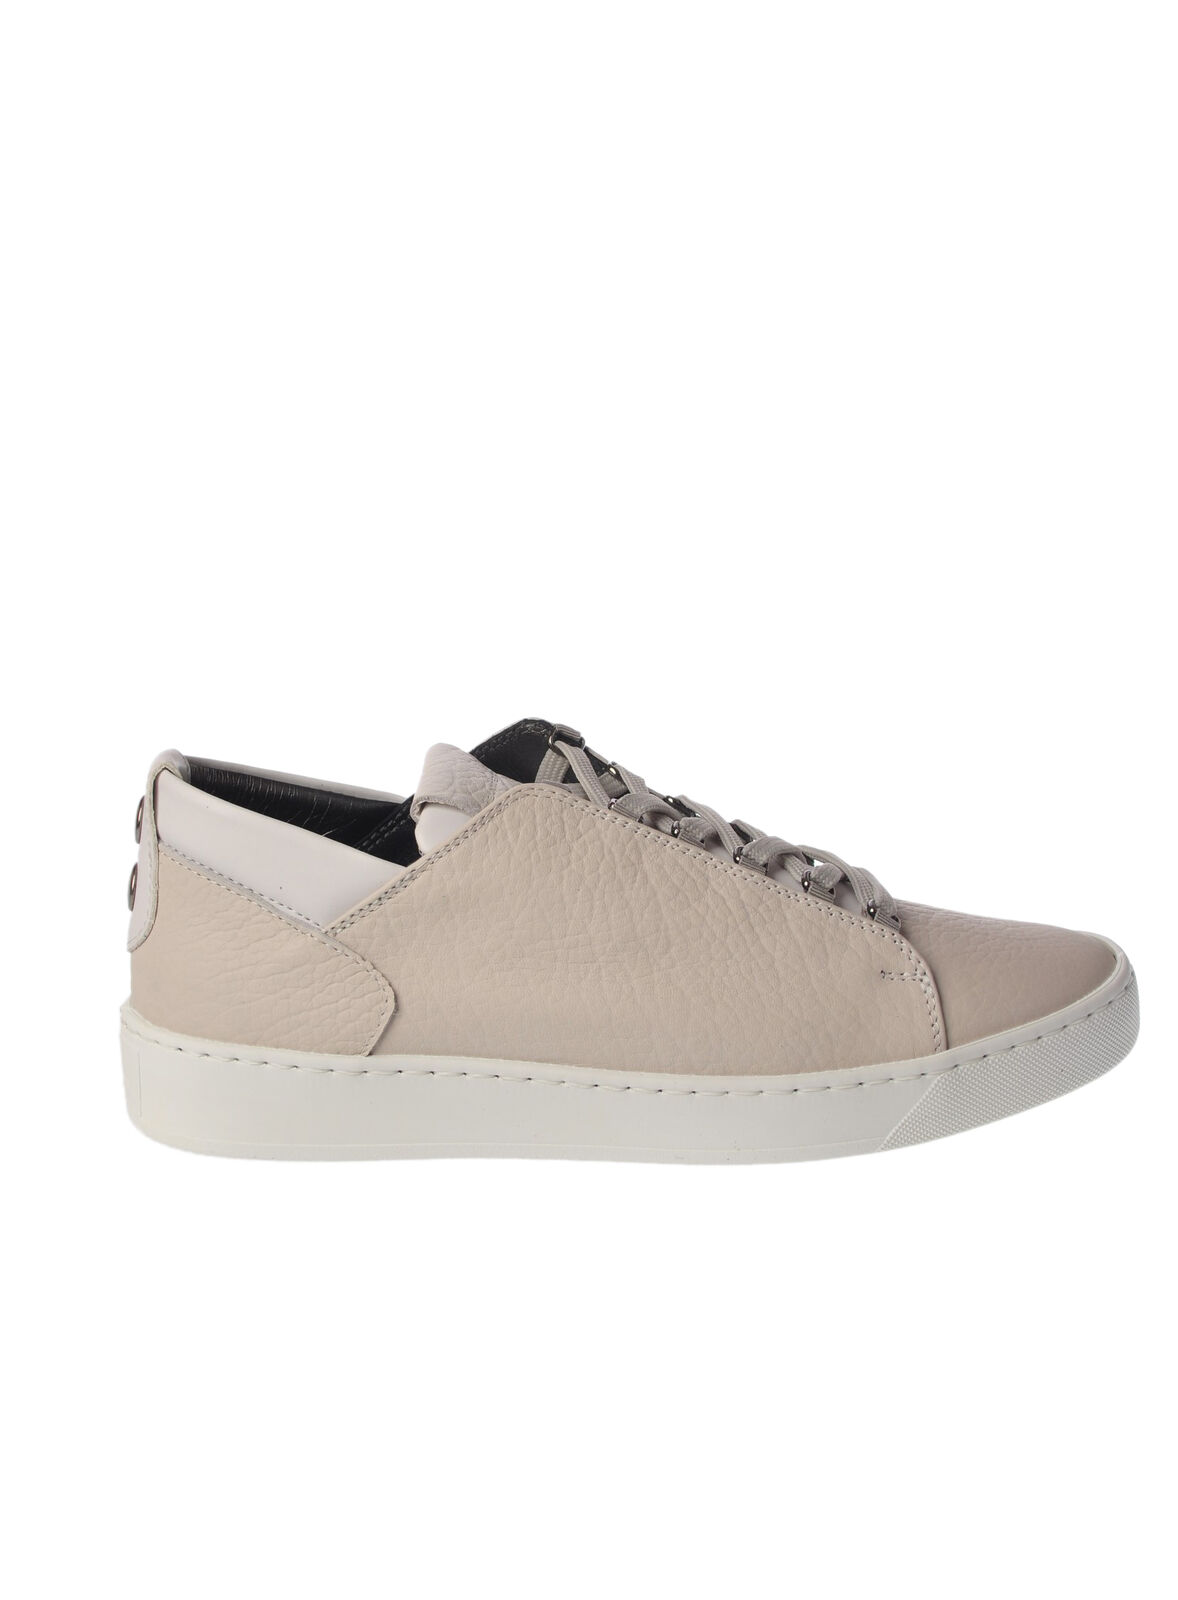 Alexander Smith - chaussures-paniers Faible - Man - Beige - 4992813F181140